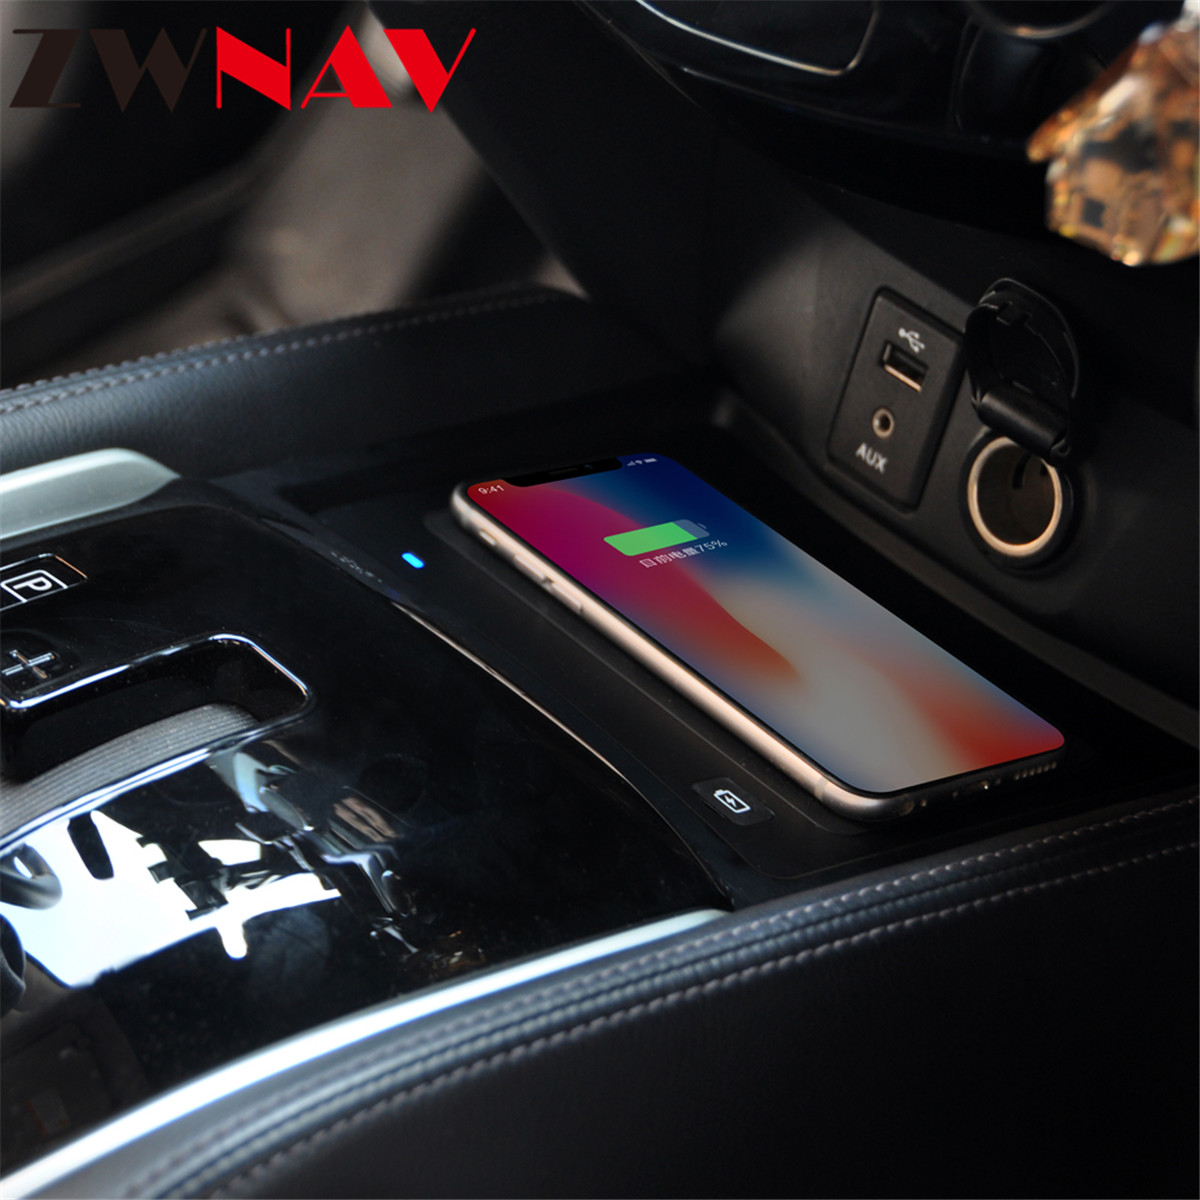 <font><b>QI</b></font> car wireless <font><b>charger</b></font> For <font><b>Nissan</b></font> <font><b>Qashqai</b></font> X-Trail 2017 Intelligent Infrared Fast Wireless Charging Car Phone Holder for iphone image